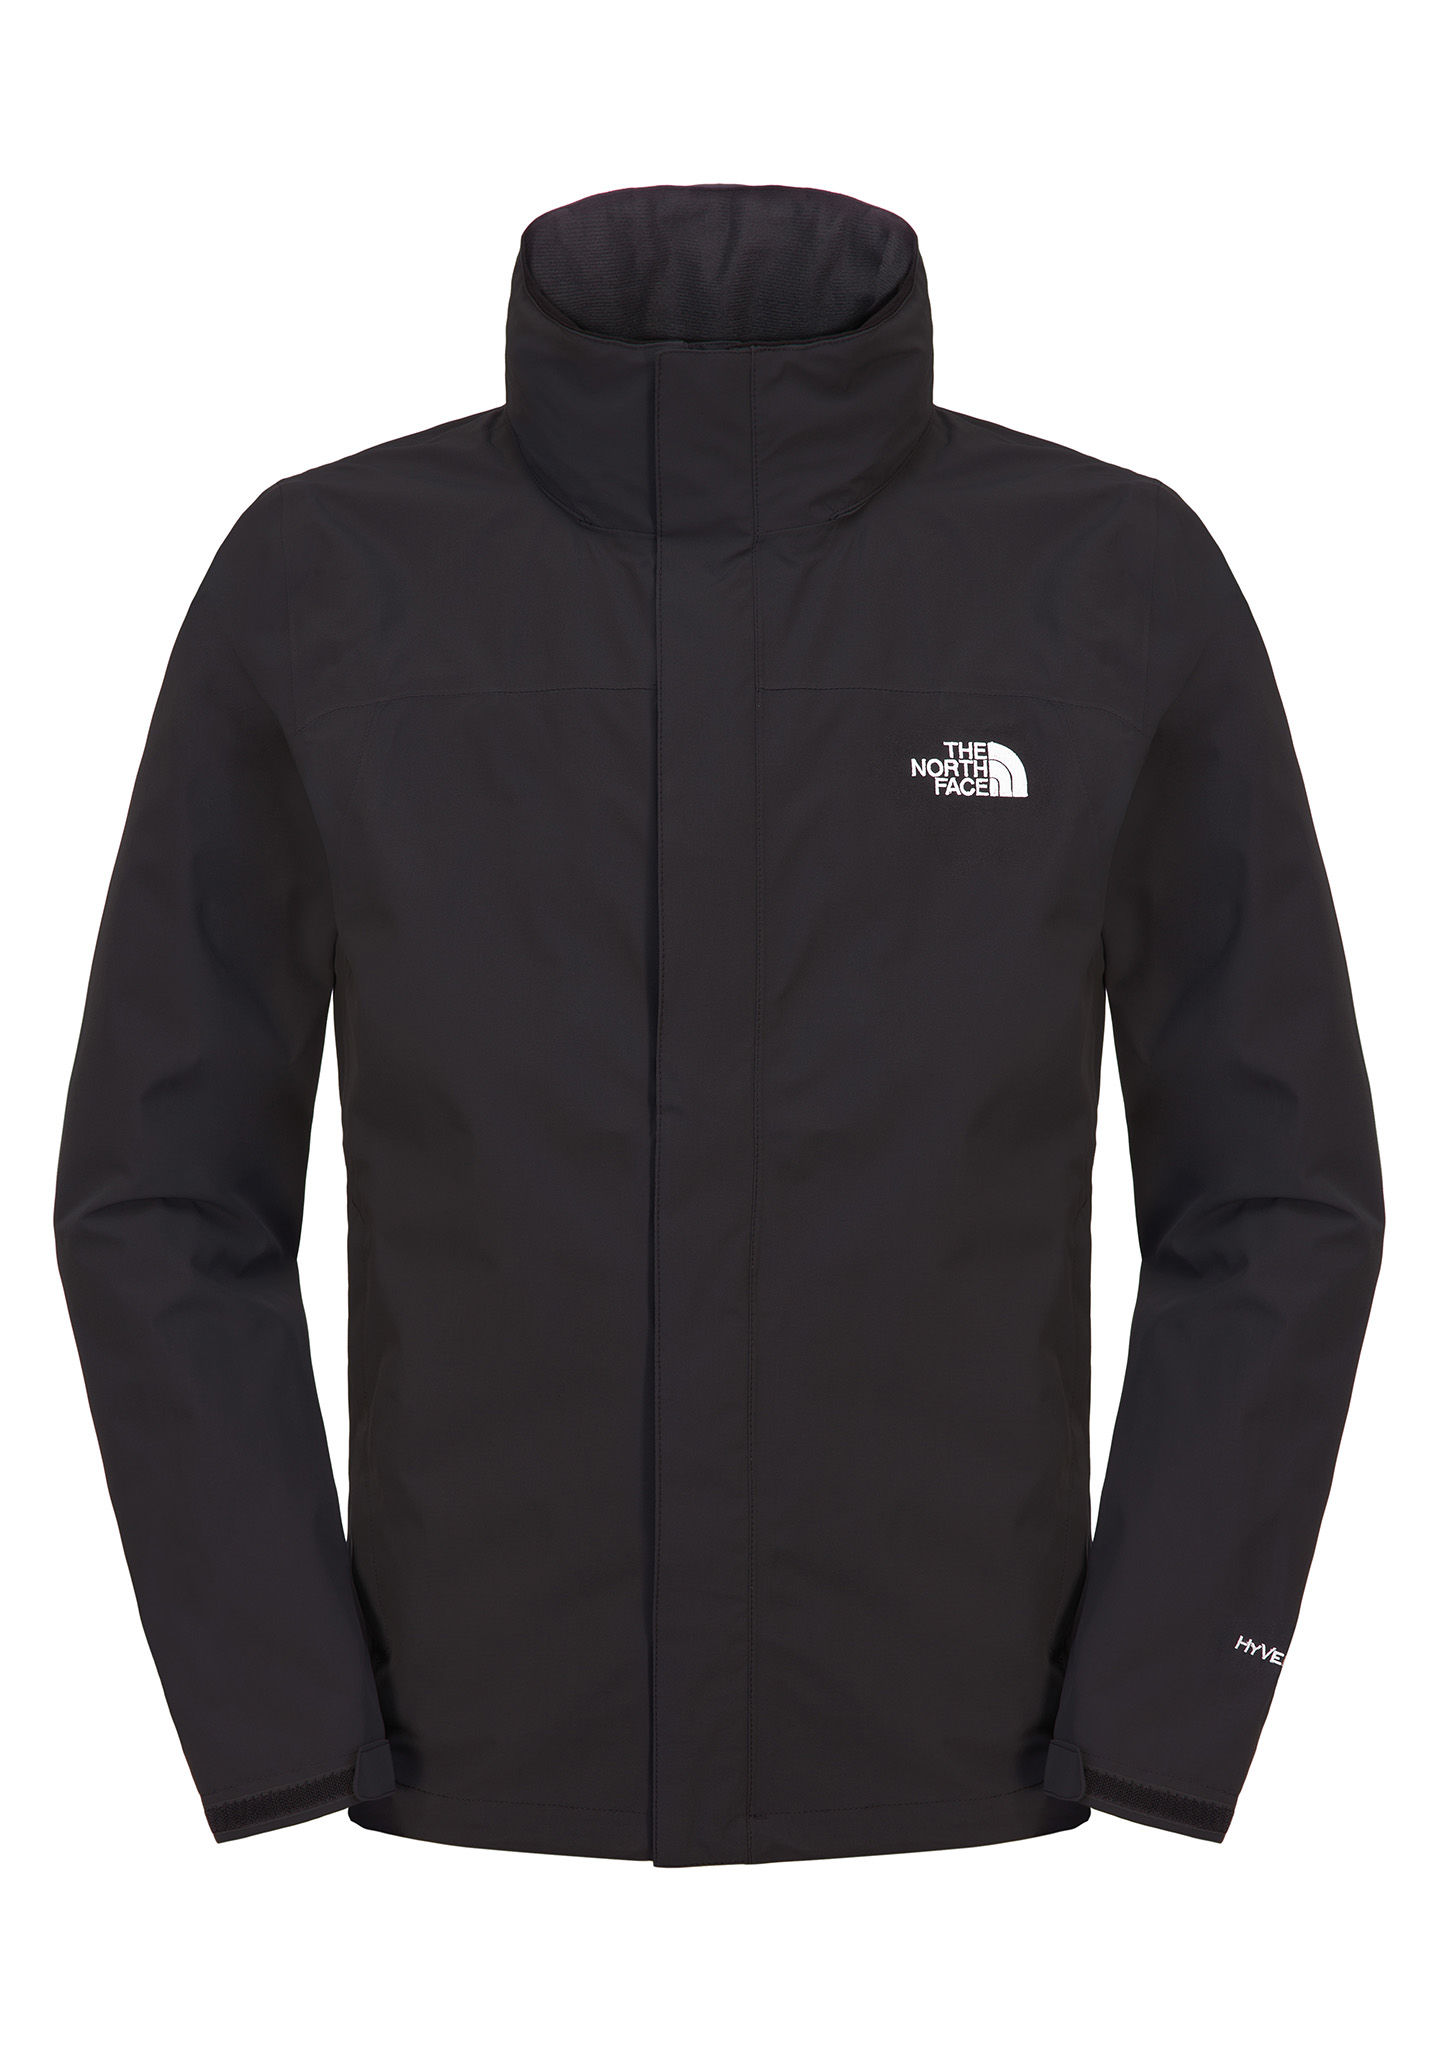 bb89acc2347ab THE NORTH FACE Sangro - Jacket for Men - Black - Planet Sports